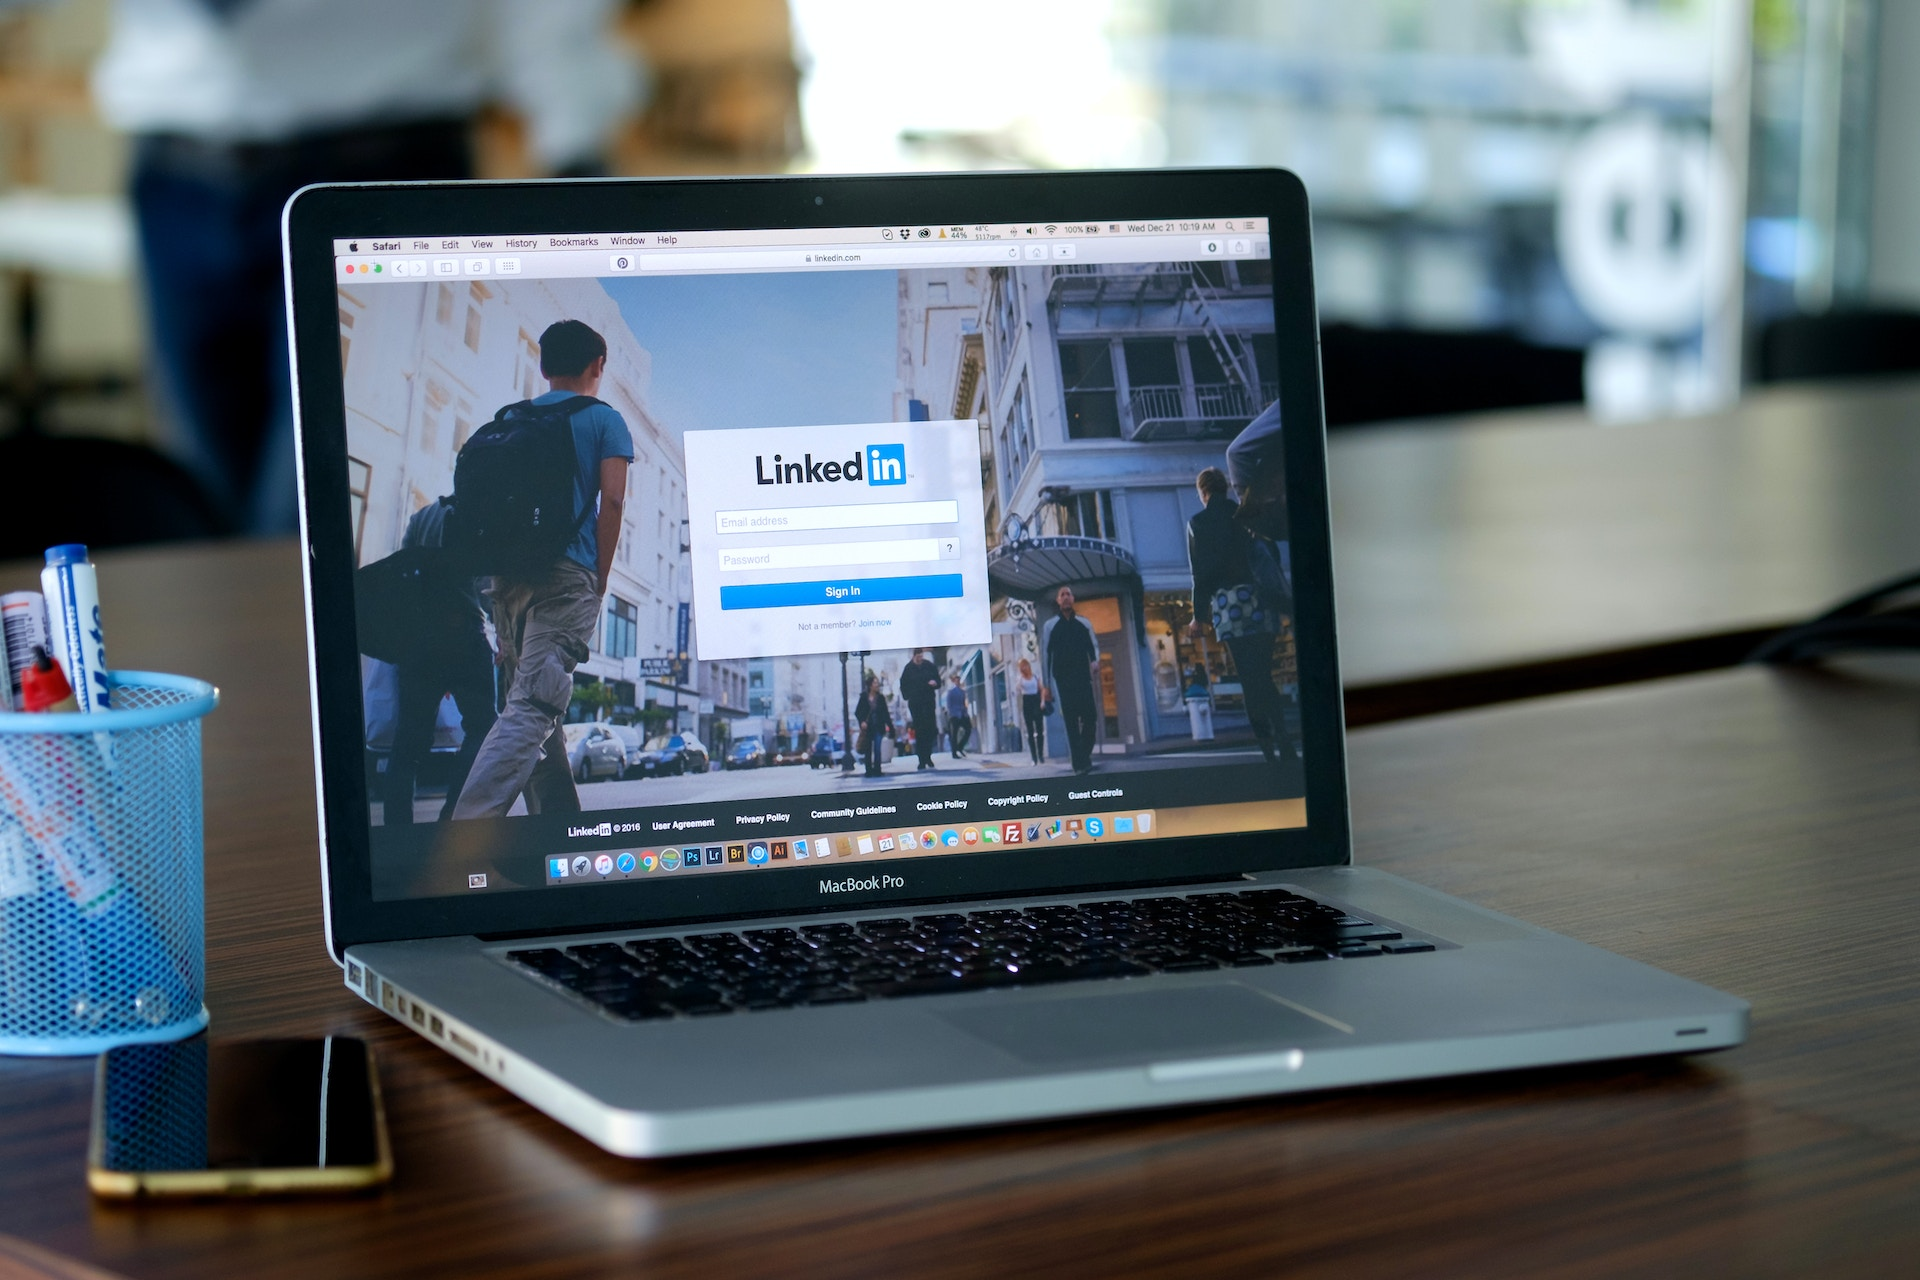 A laptop on a desk with the LinkedIn homepage open